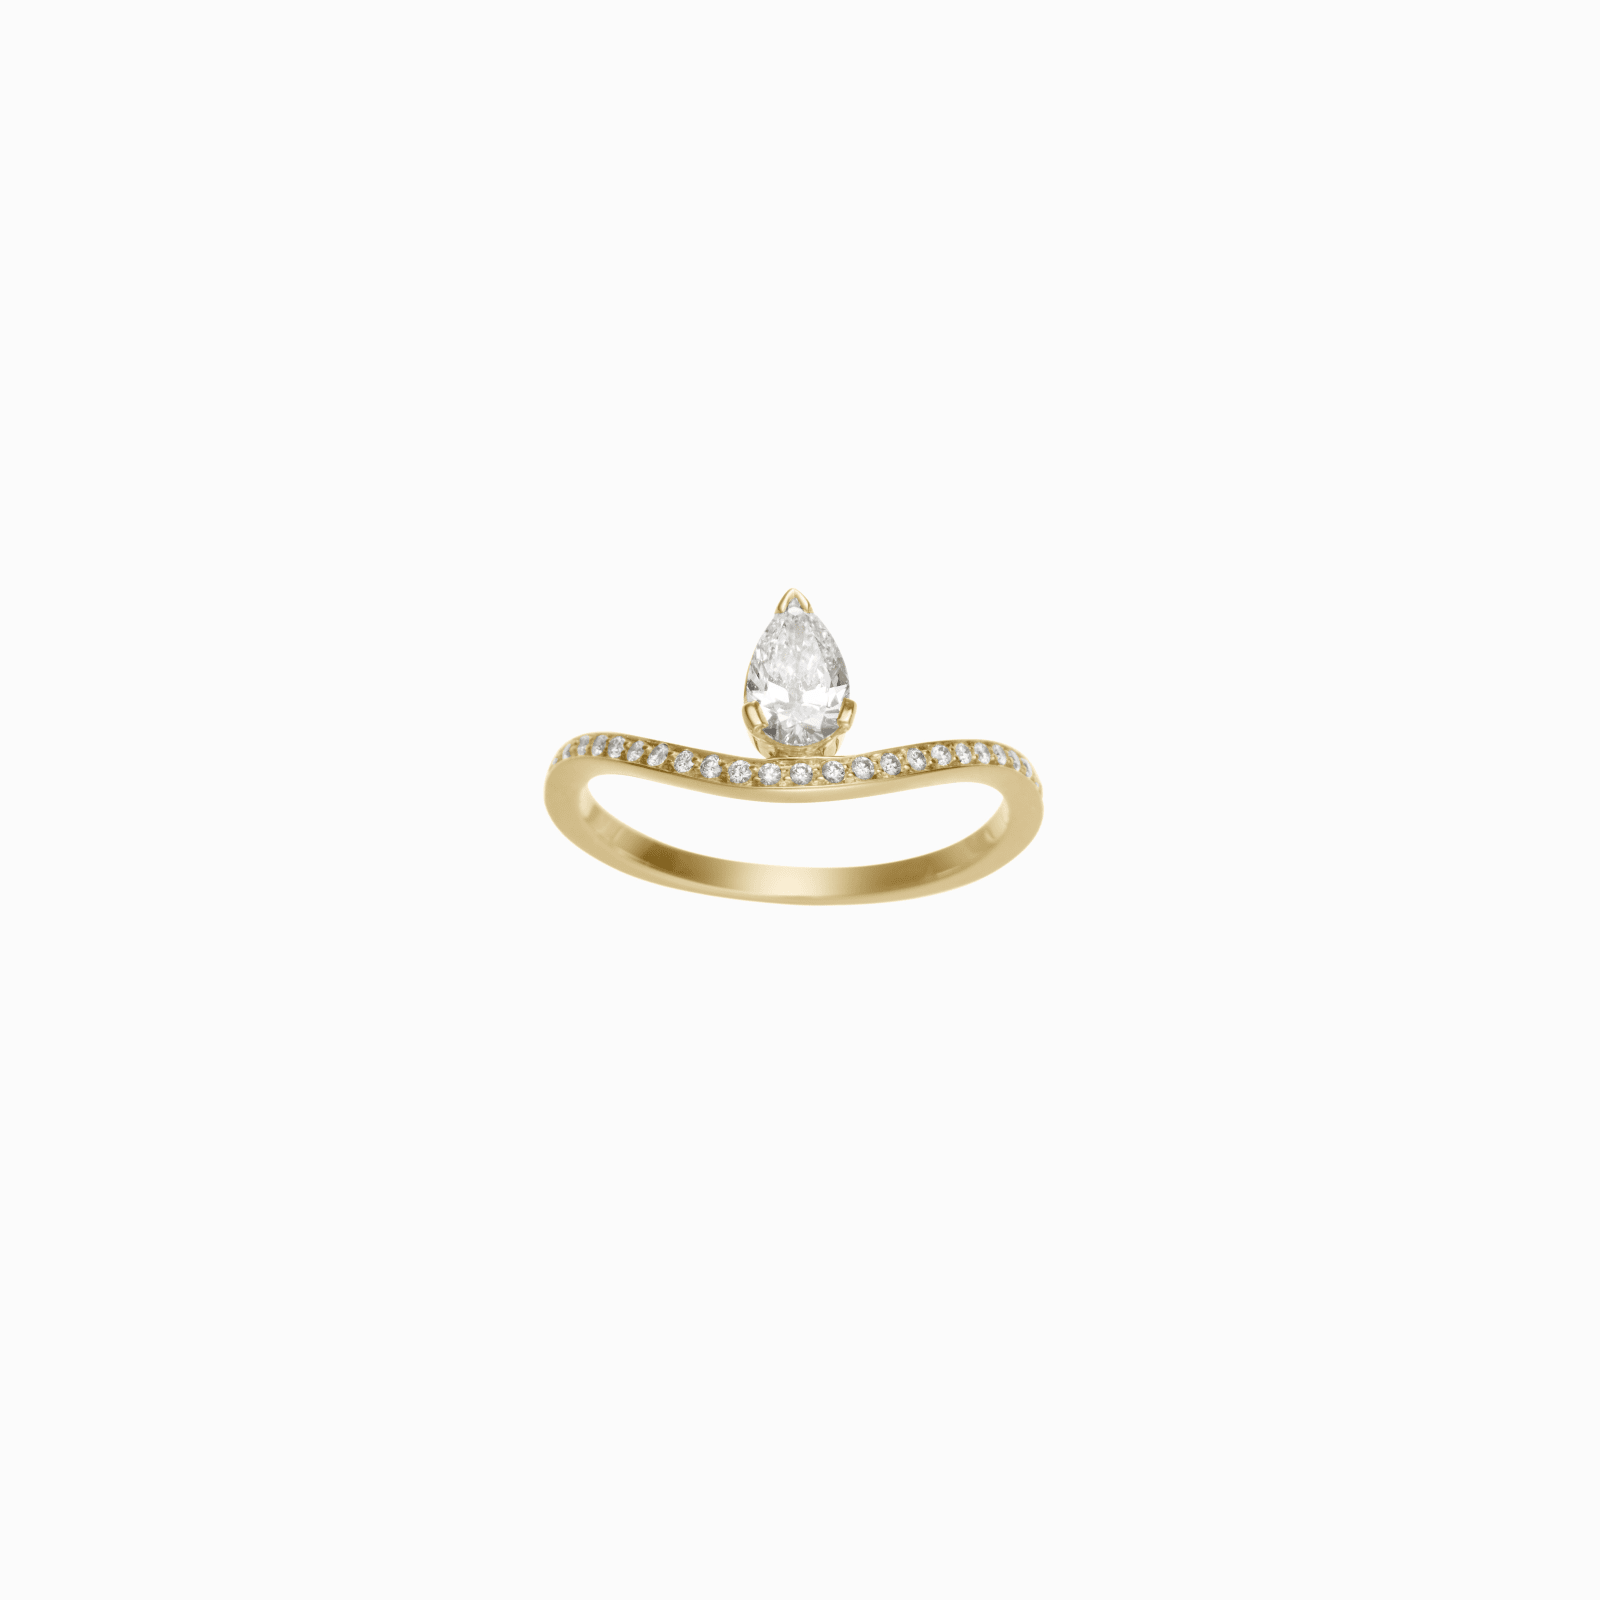 Sophie Bille Brahe Diana ring - December is filled with love and this delicate engagement ring is simply exquisite to express that. 18KT yellow gold and 0.46CTS of top wesselton VVS diamond in pavé setting and a central pear diamond in an invisible setting, Sophie Bille Brahe has considered what a woman today truly wants to signify her heart.